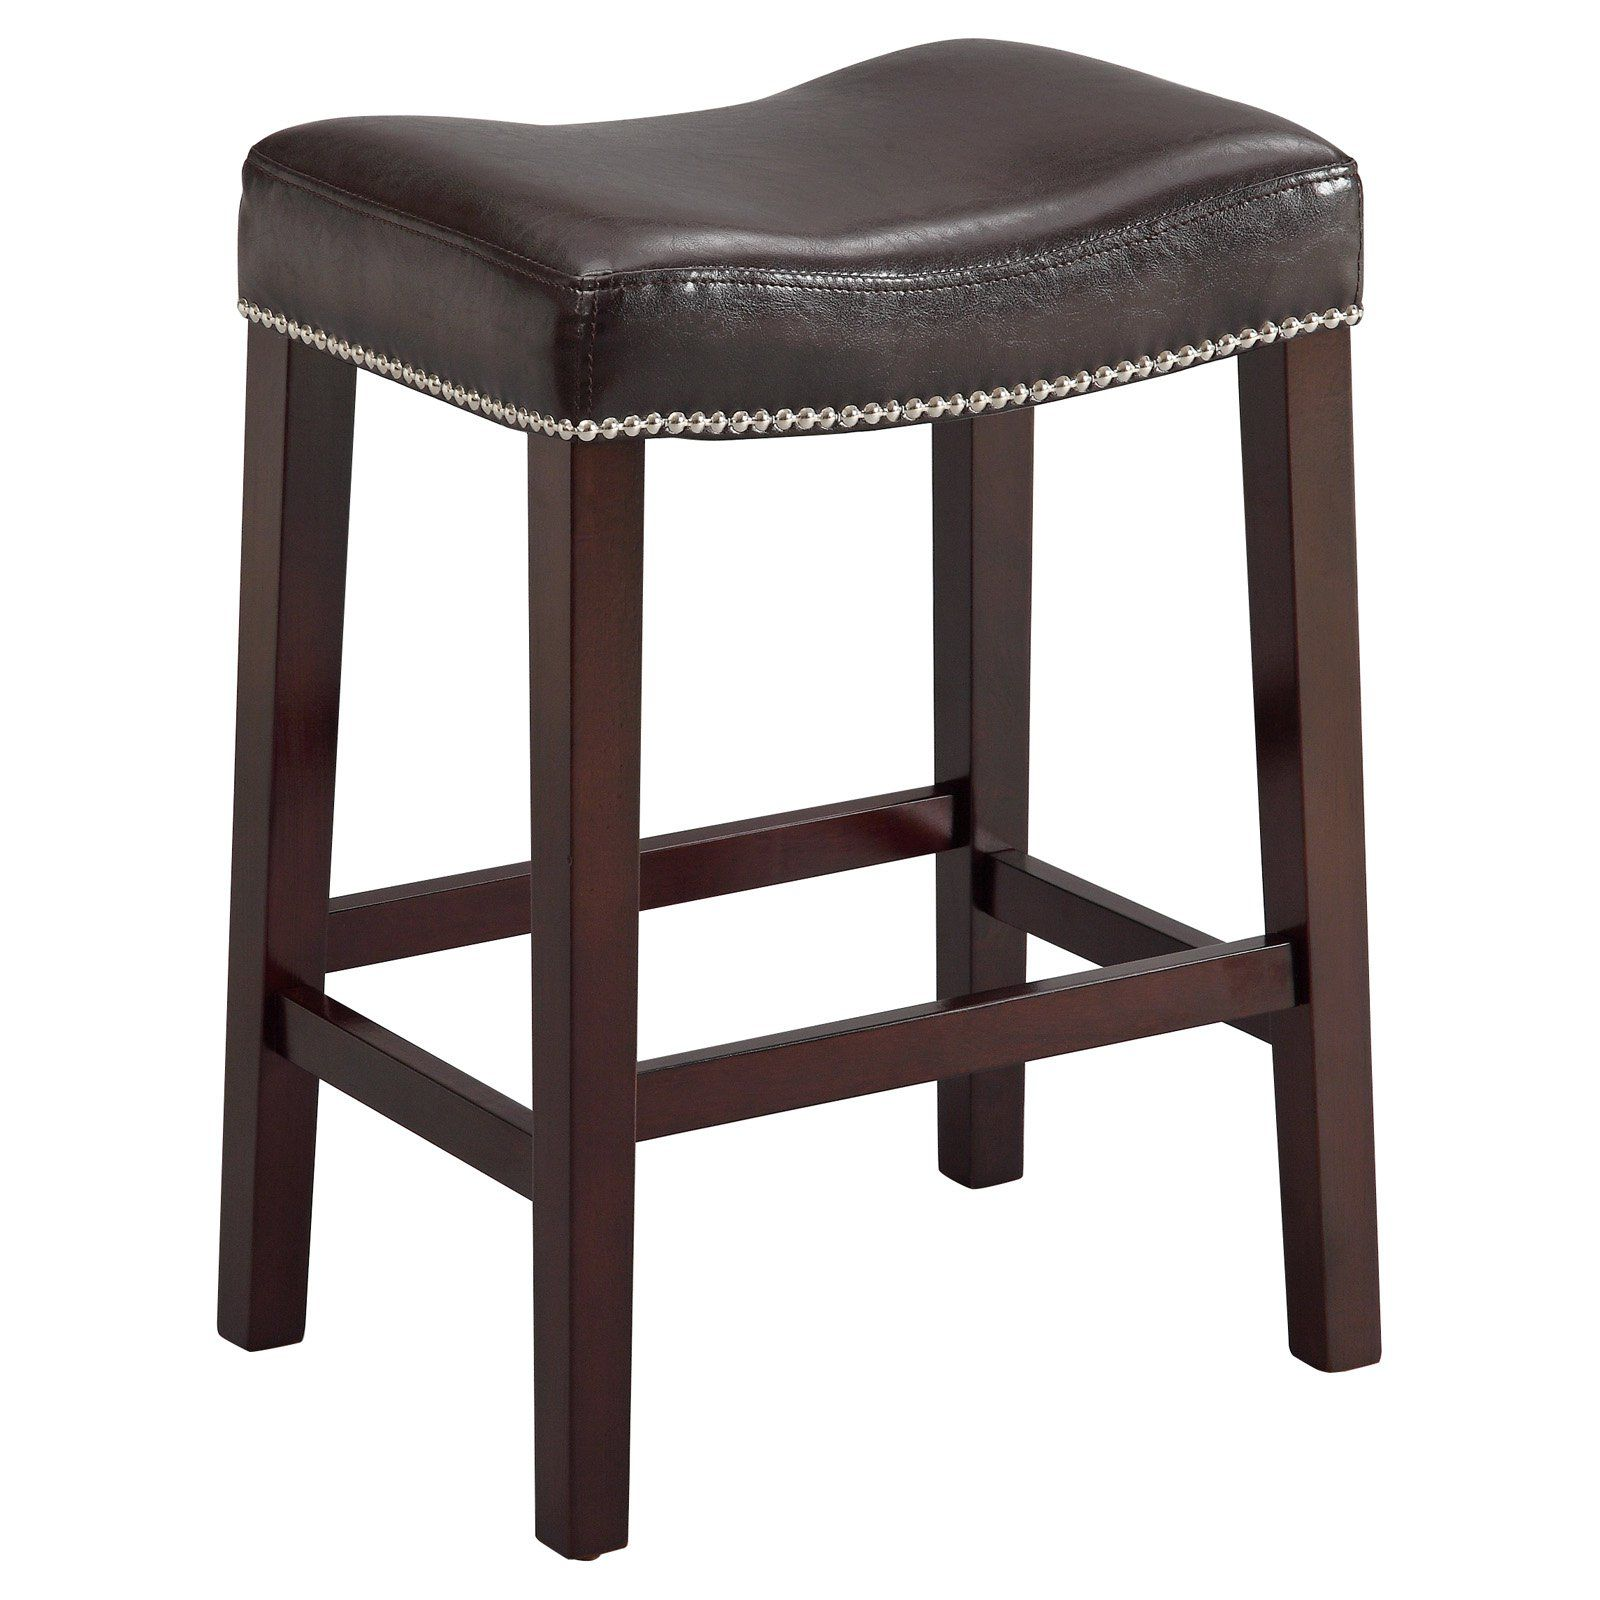 Crown Mark Nadia 24 In Backless Counter Stool Espresso Bar Stools Counter Height Stools Stool